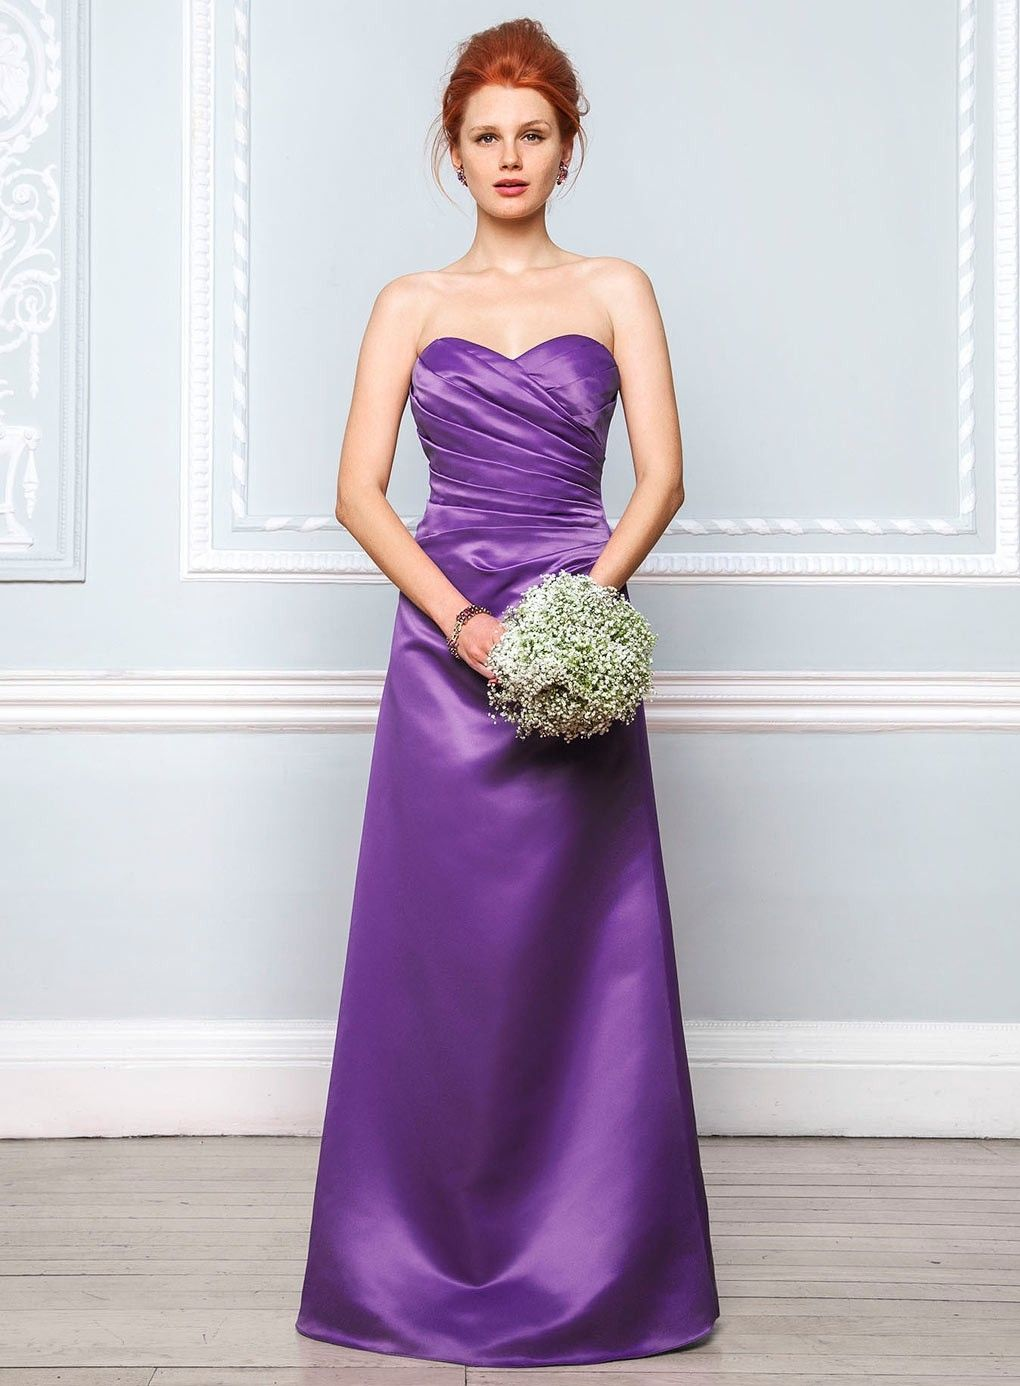 Violetta Purple Satin Bridesmaid Dress - Wedding - Sale - Bhs ...